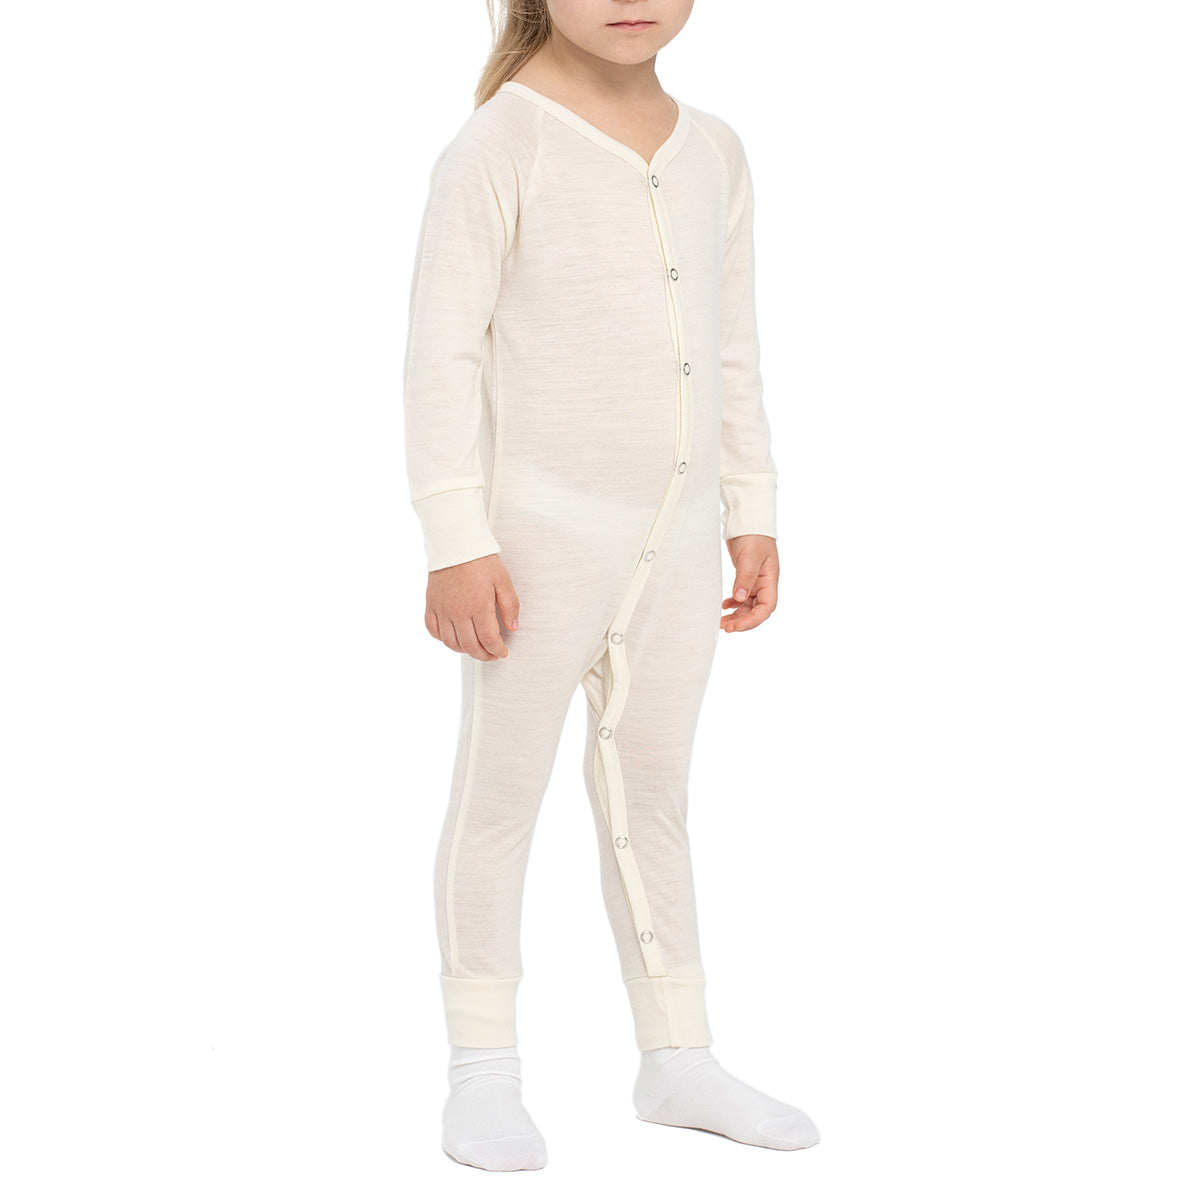 menique Kids' Merino 160 Romper Natural Color